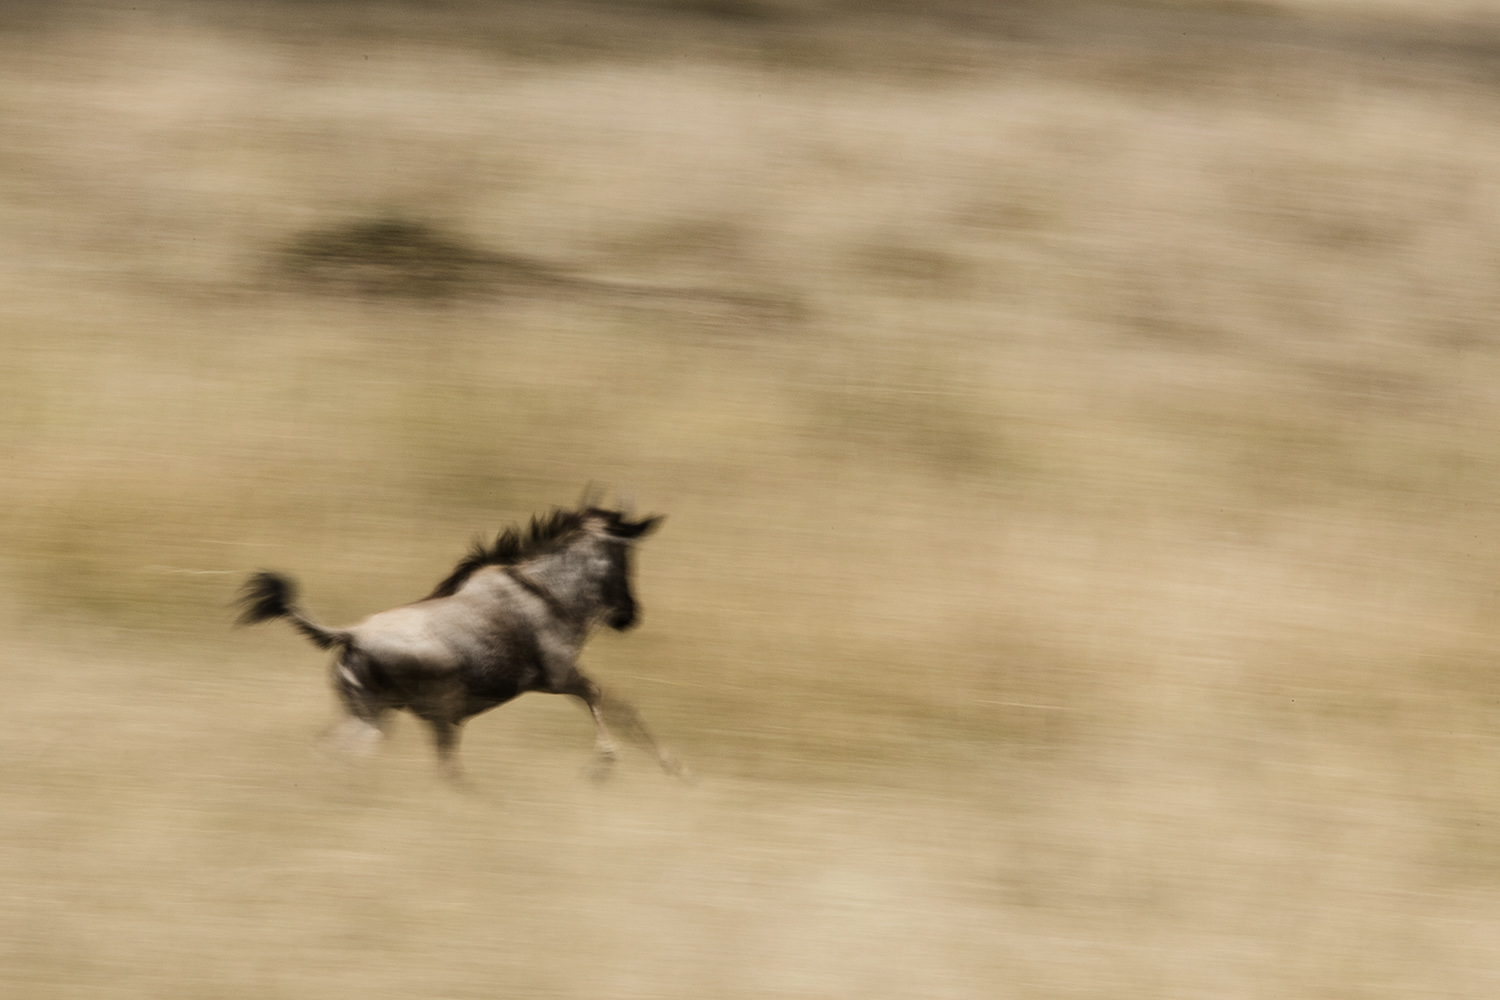 A young Wildebeest during the great migration in the Maasai Mara